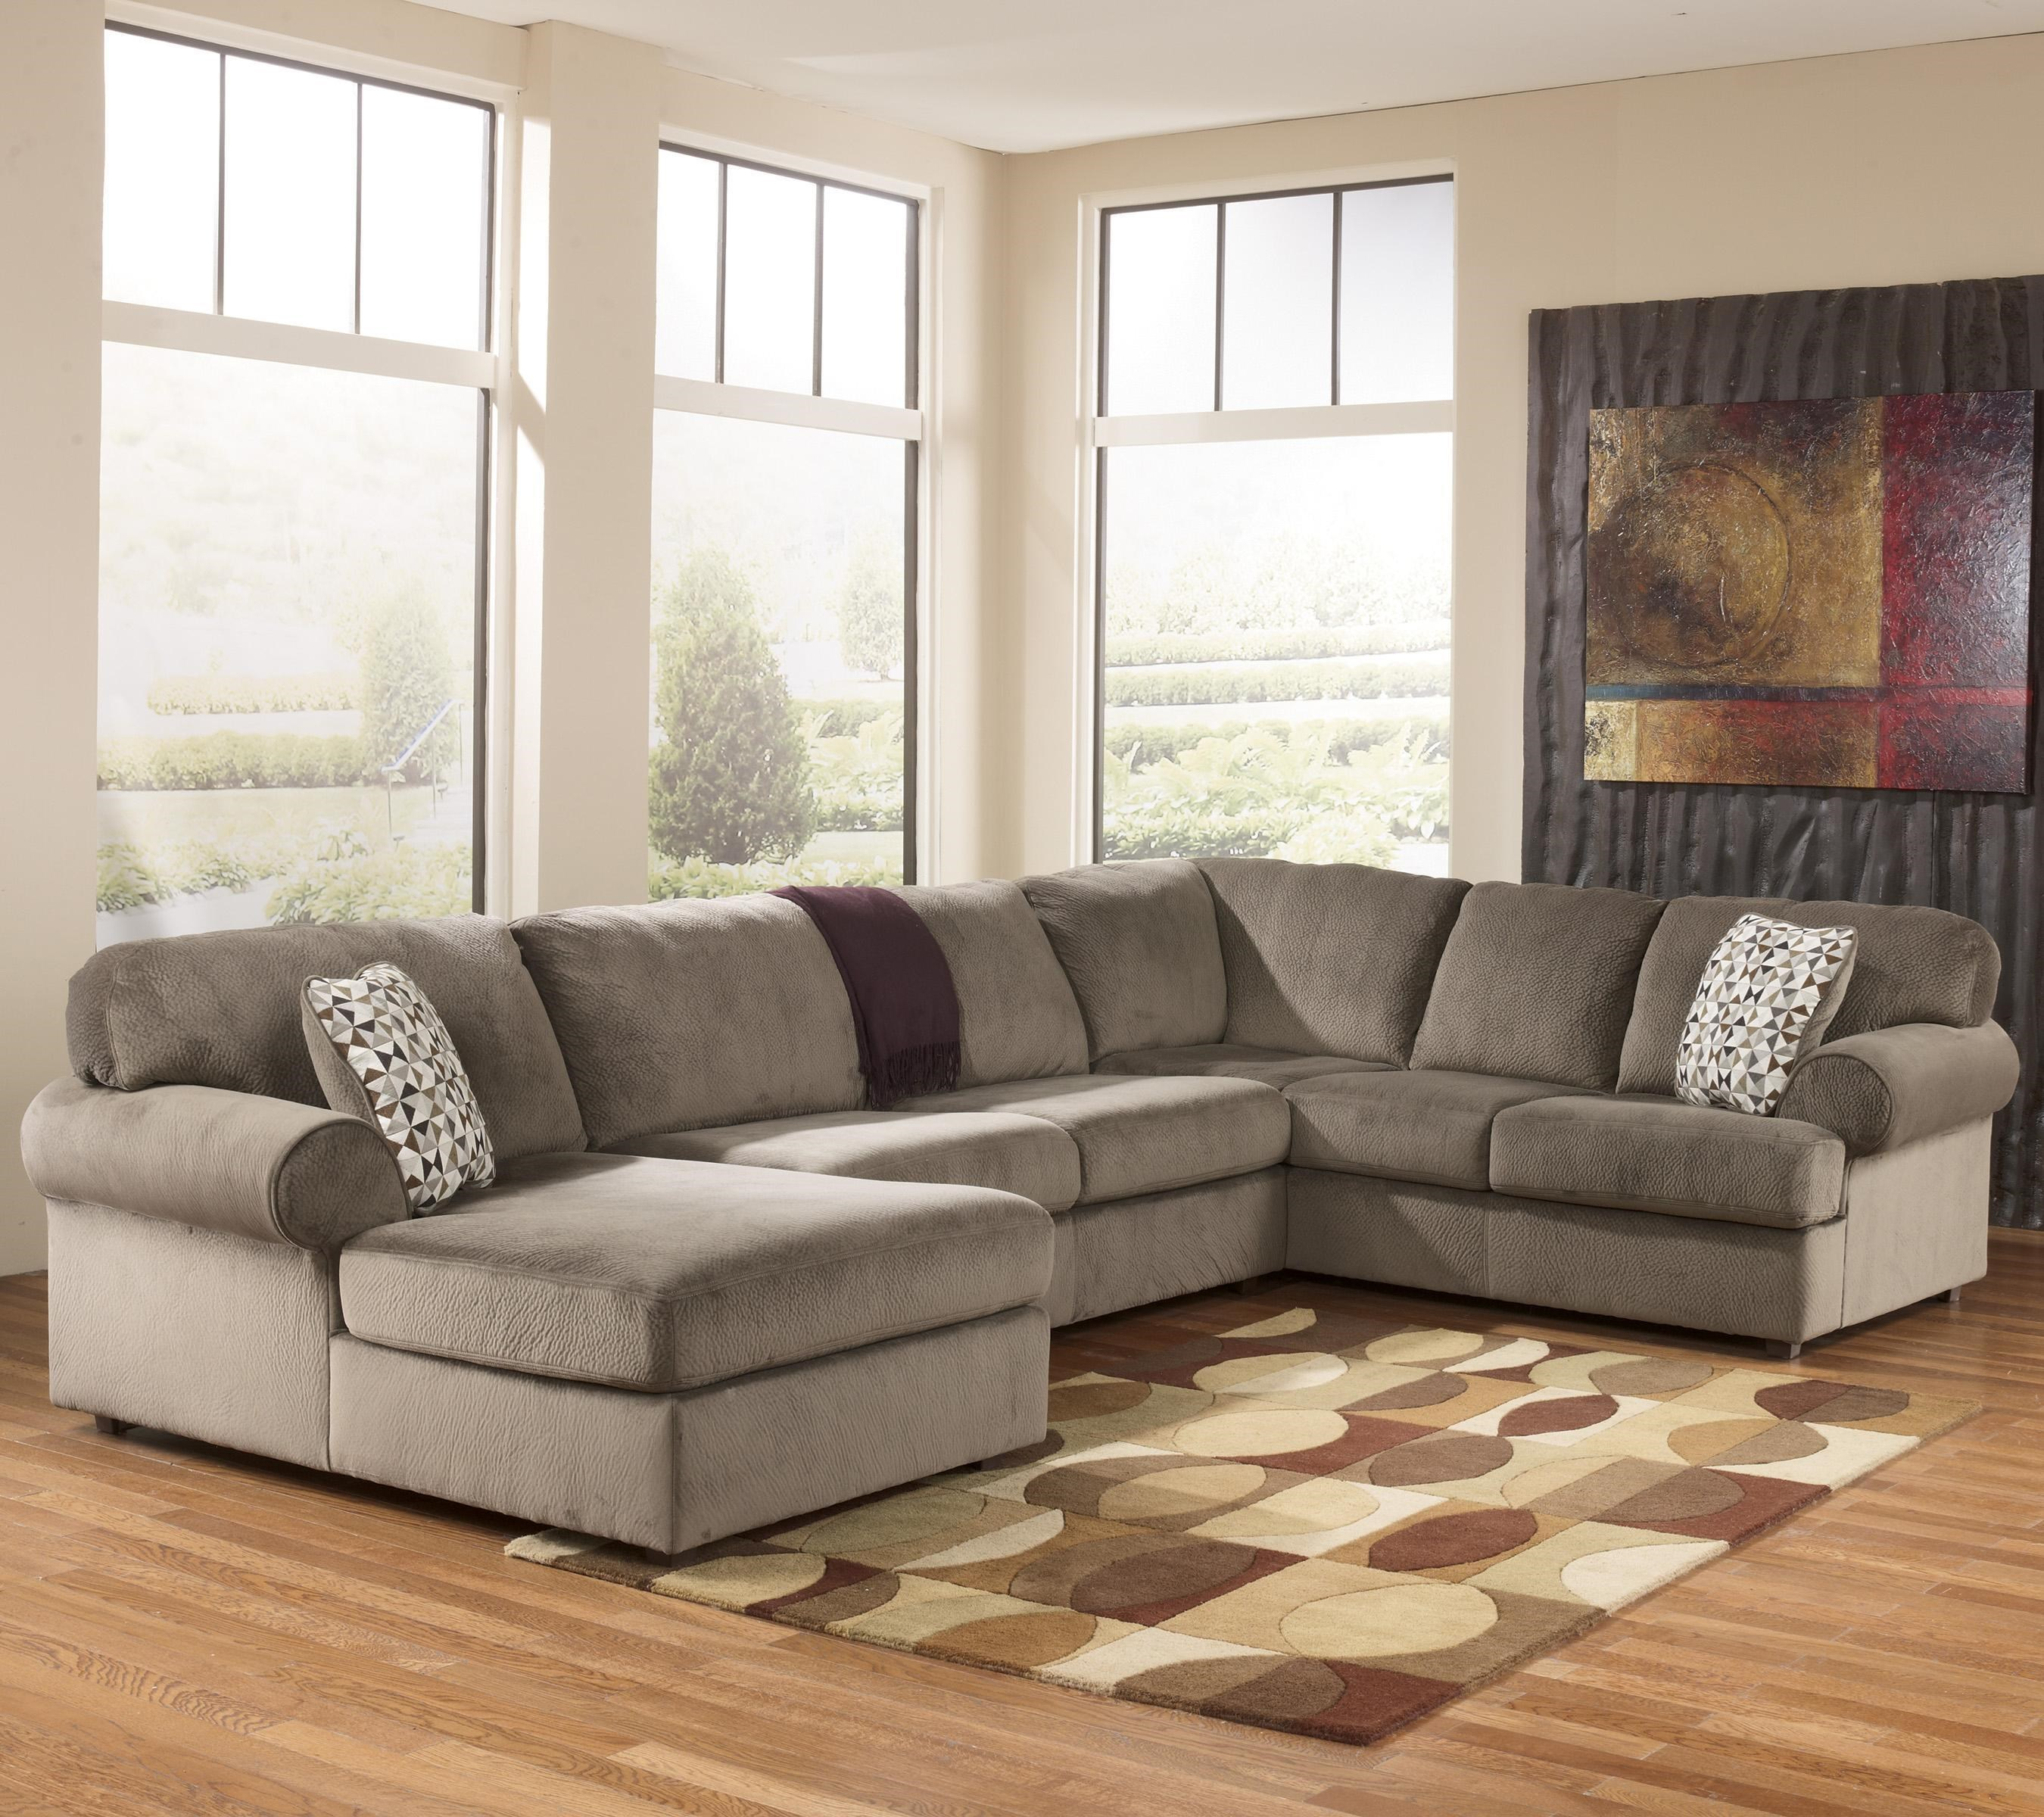 Hasley Furniture: Casual Sectional Sofa With Left Chaise By Signature Design